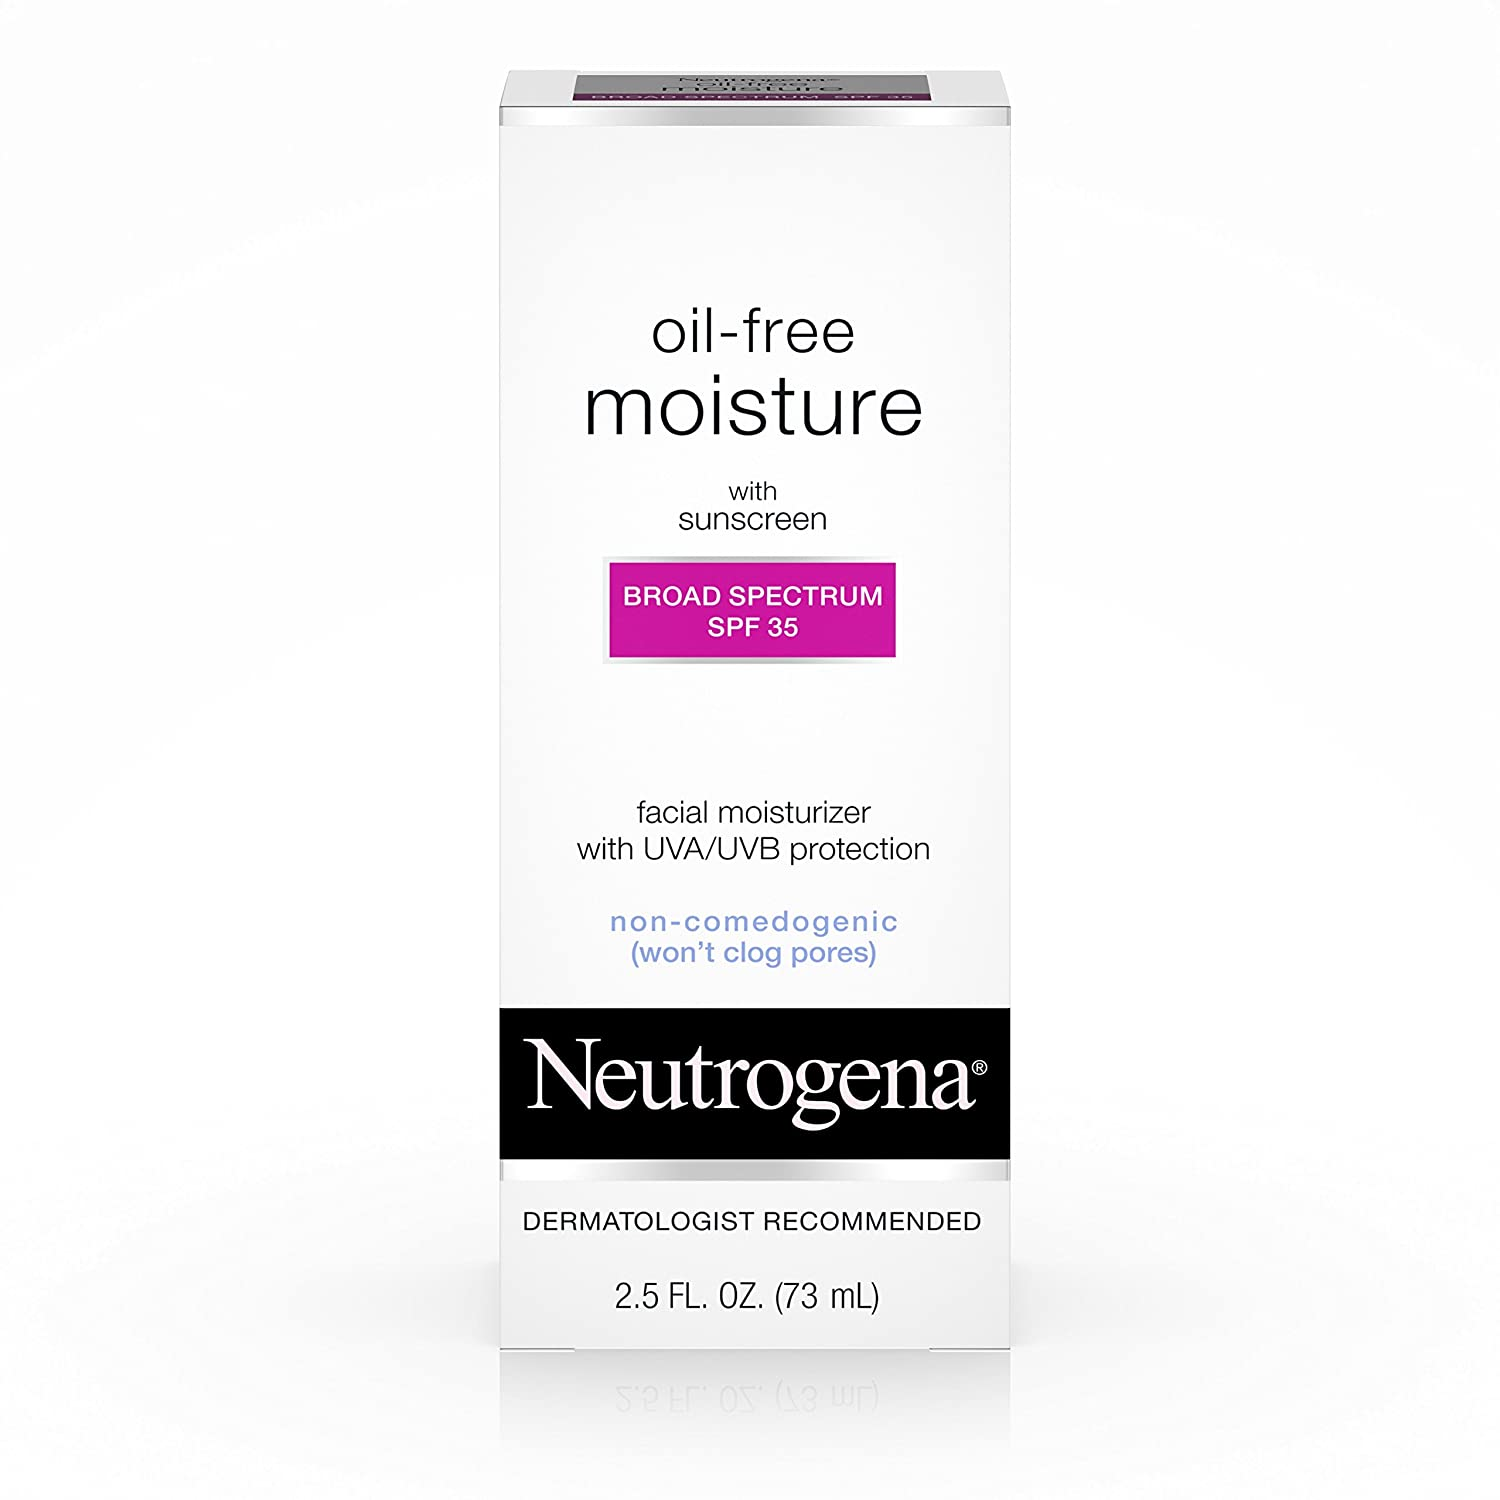 Neutrogena Oil-Free Daily Facial Moisturizer With Broad Spectrum SPF 35 Sunscreen, Dermatologist Recommended, Fragrance-Free, Non Comedogenic and Hypoallergenic 2.5 fl. oz Johnson & Johnson SLC J&J494716